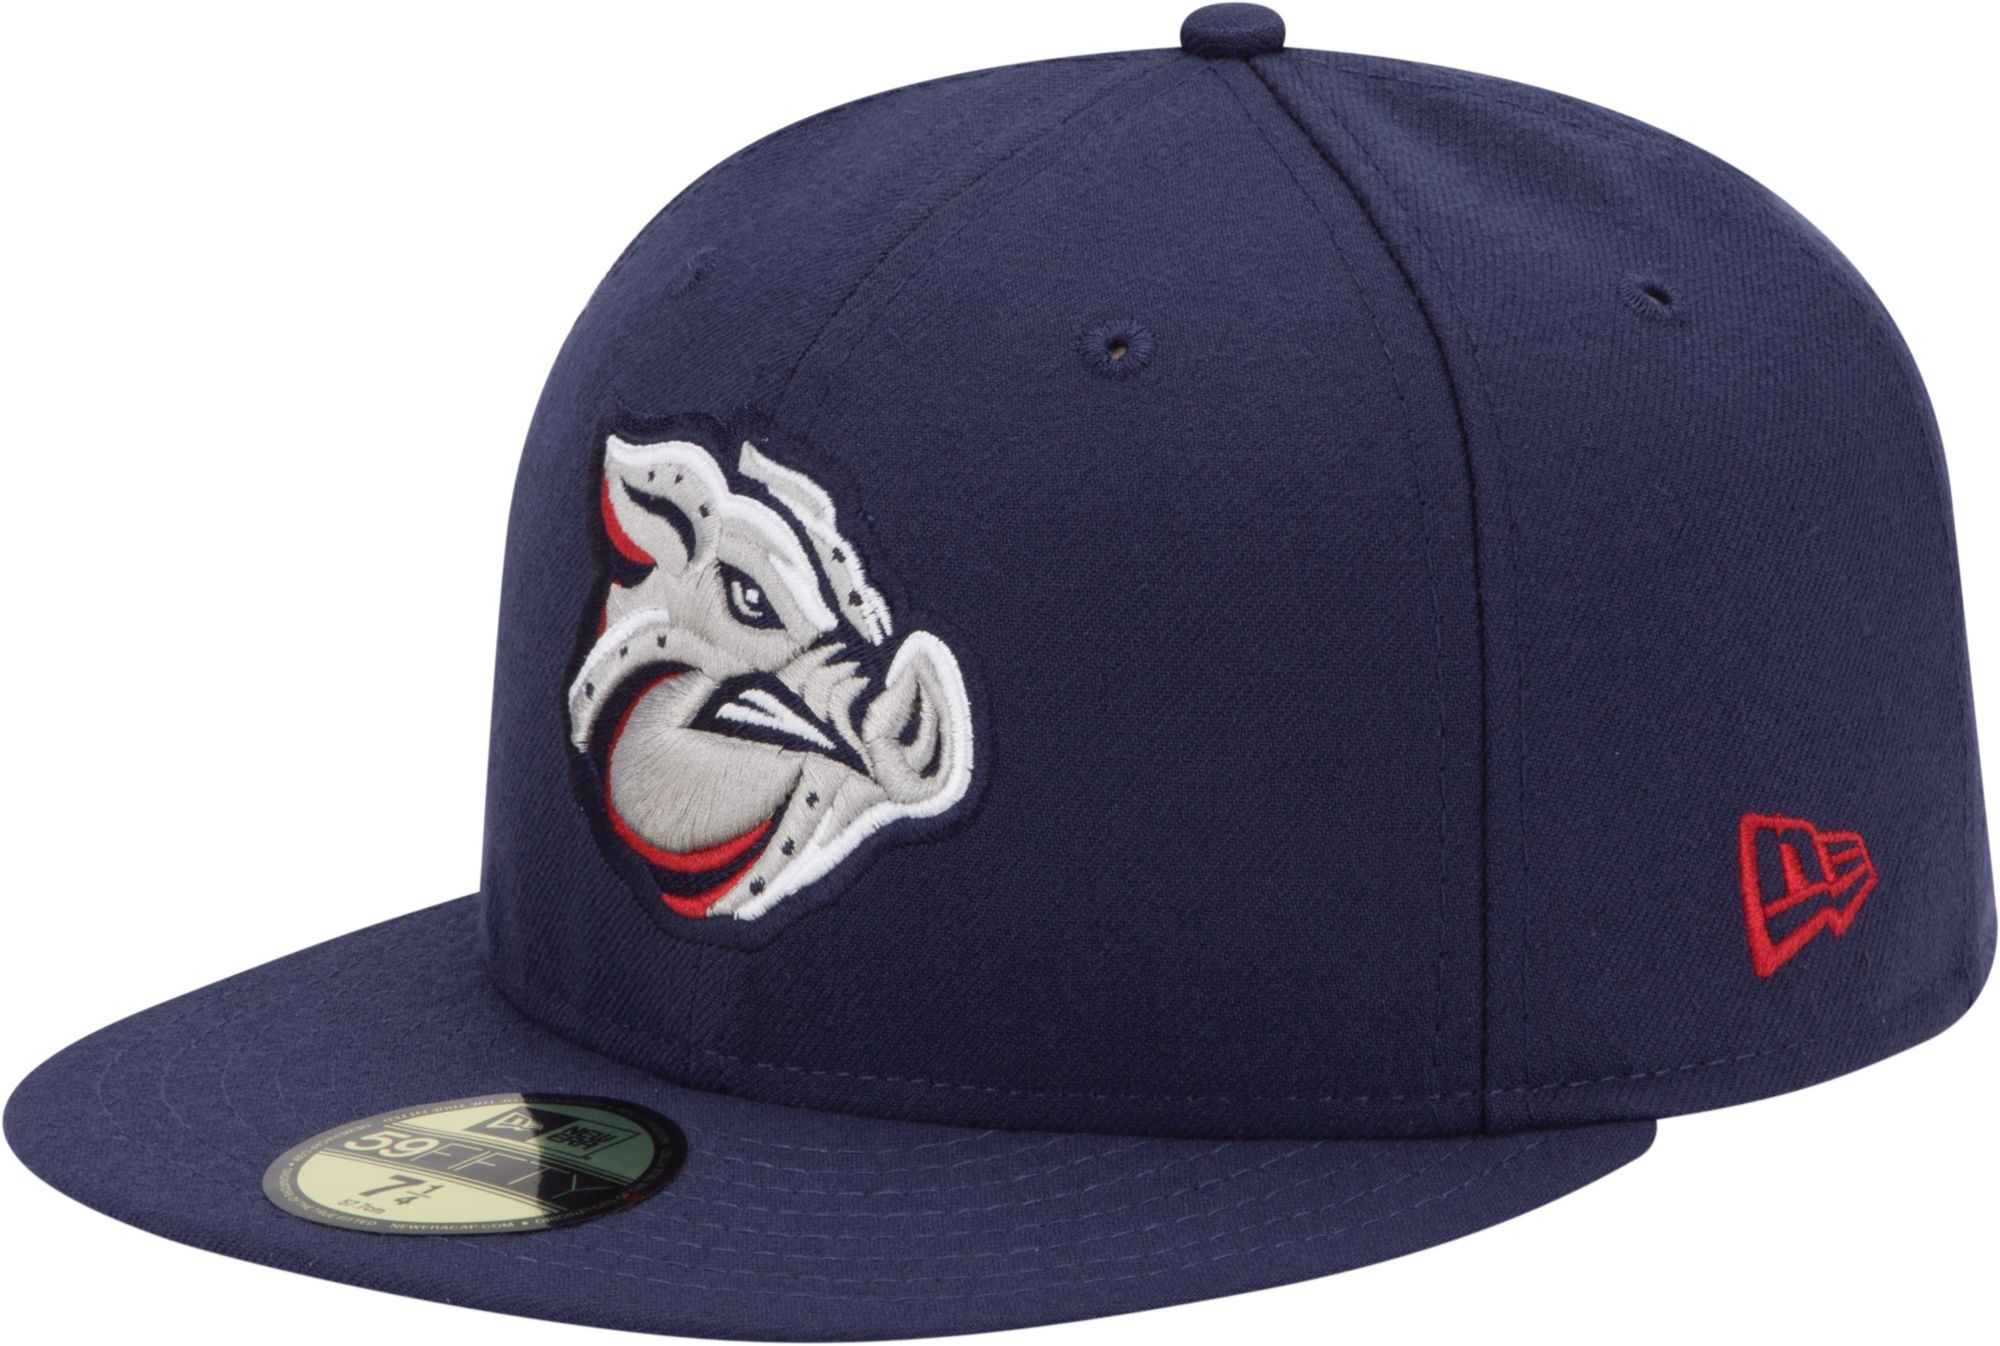 Alternate Images 1 of 4. Product Image. Product Image. Product Image.  Product Image.  34.99. Sports Team  Lehigh Valley IronPigs a8500b241b2f